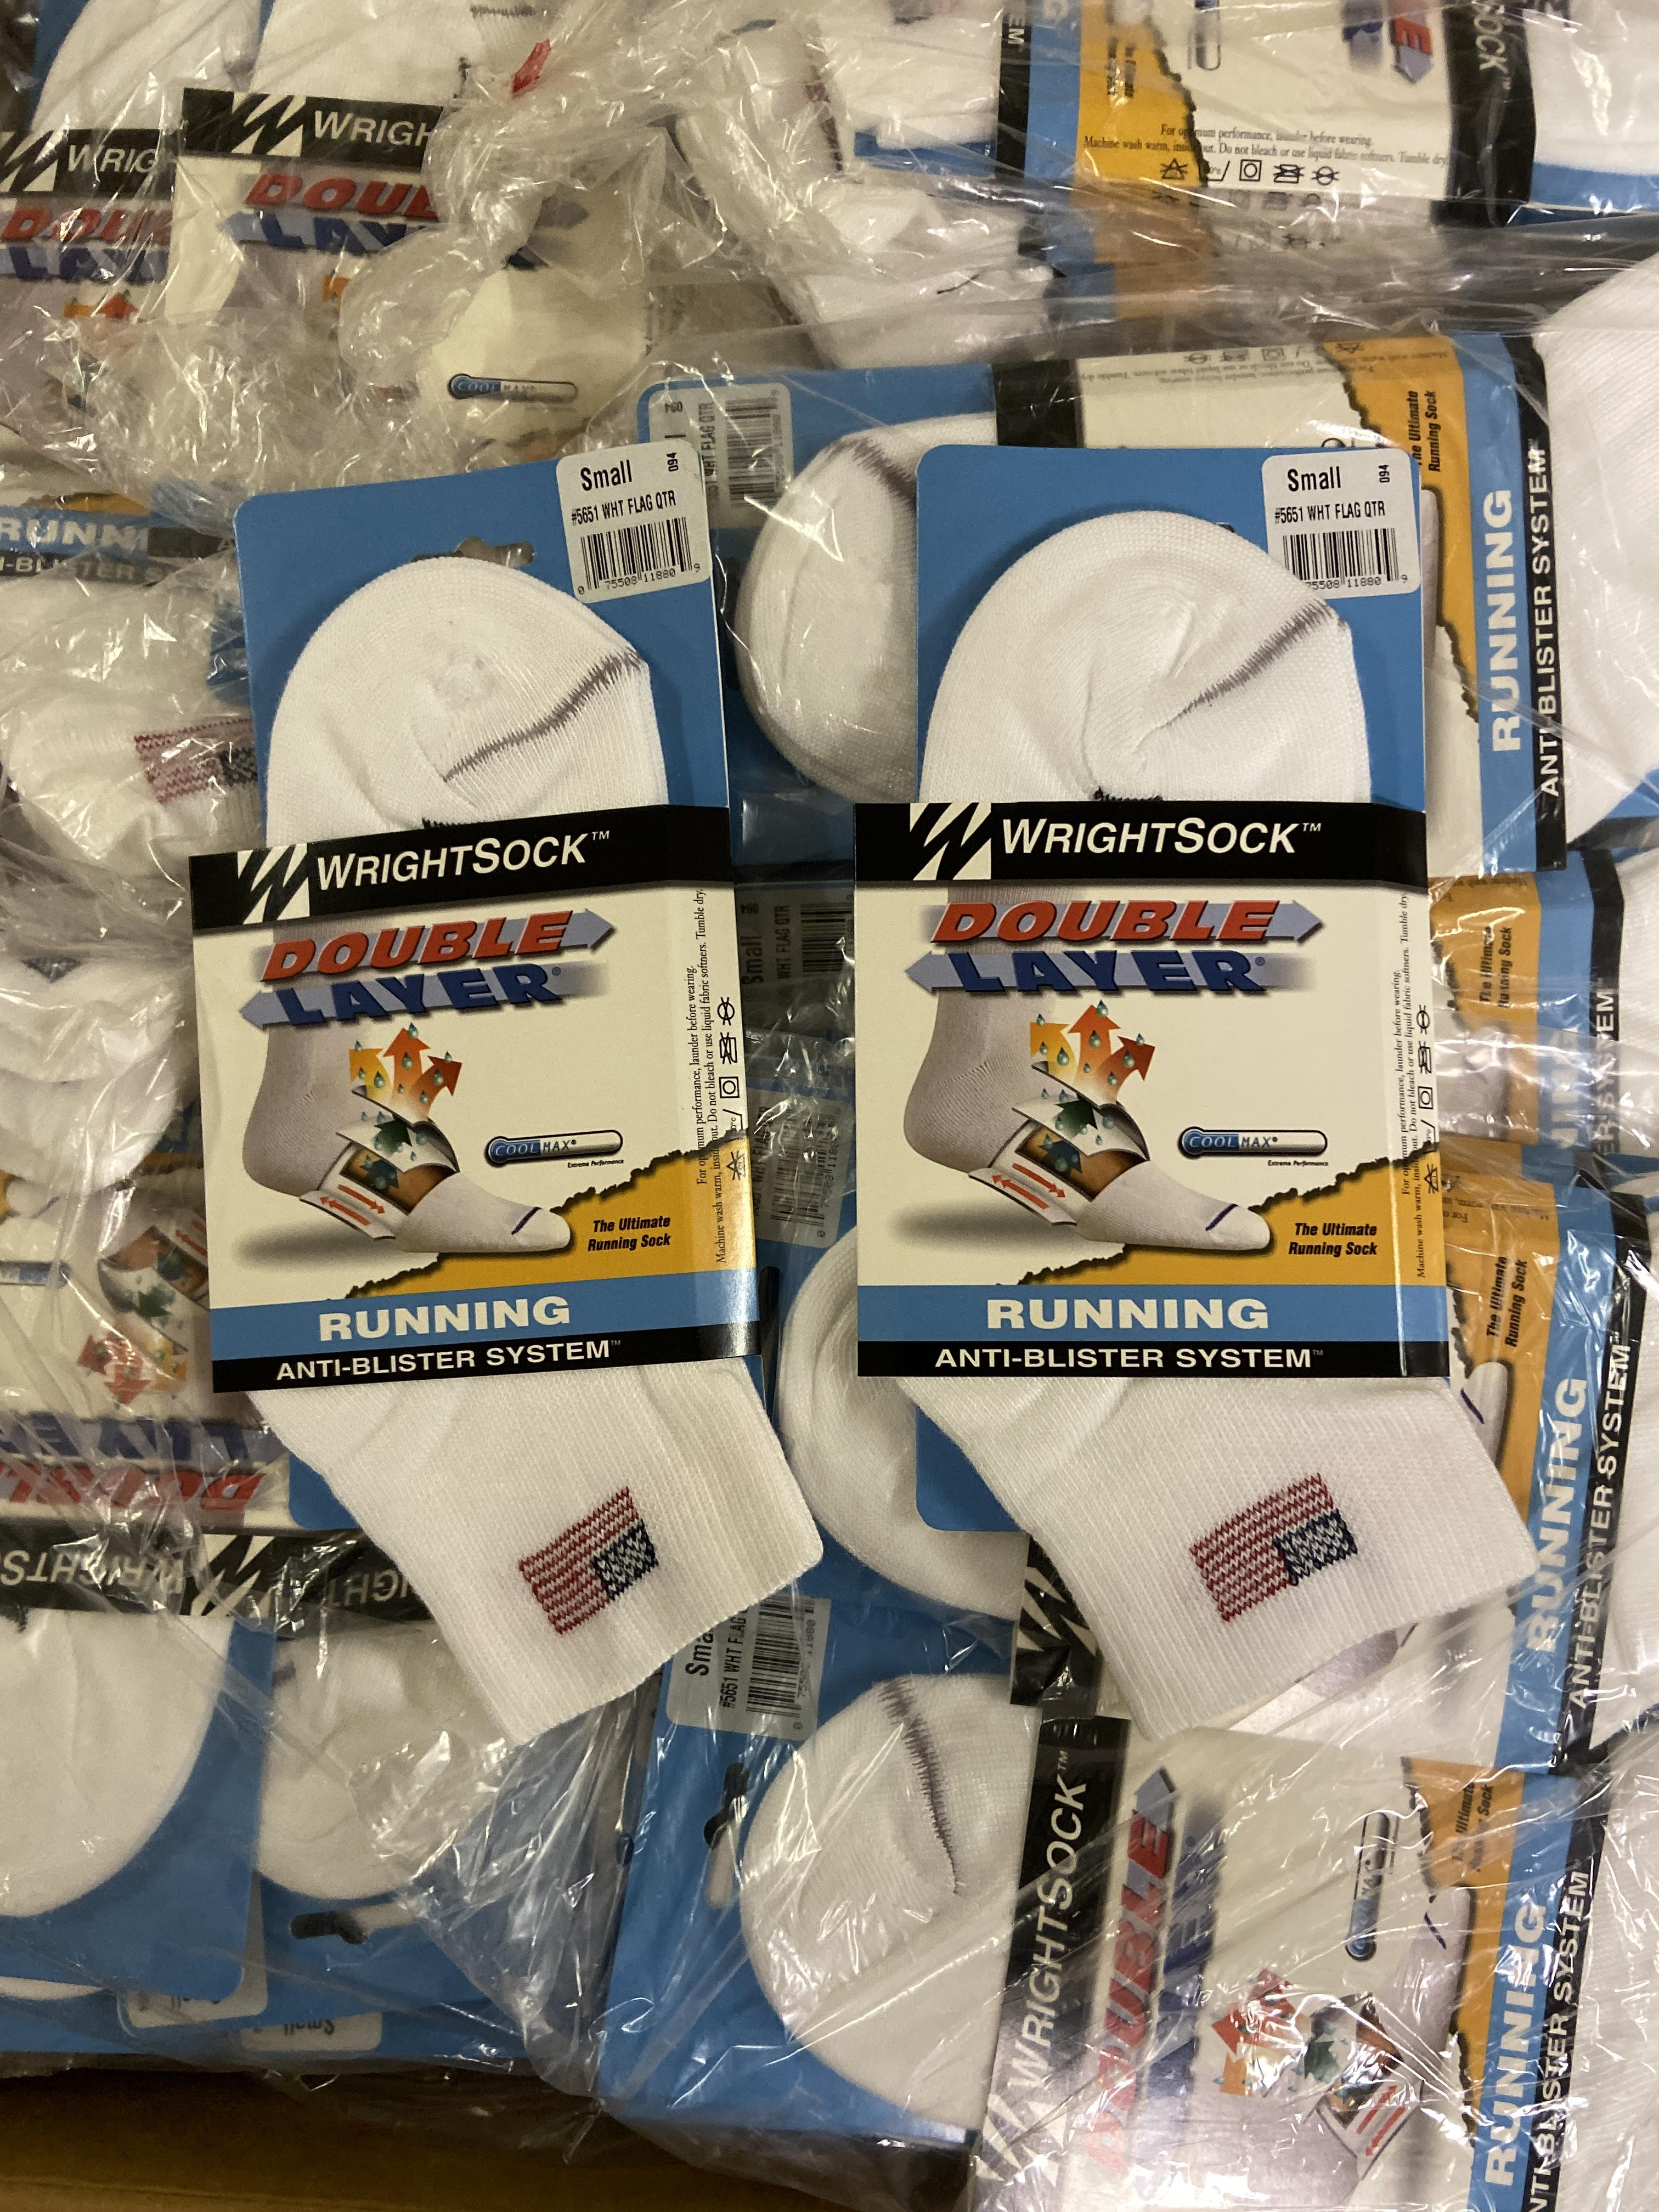 250+ packs of New Socks, American Flag USA Wrightsock Running , Double Layer - Image 2 of 3